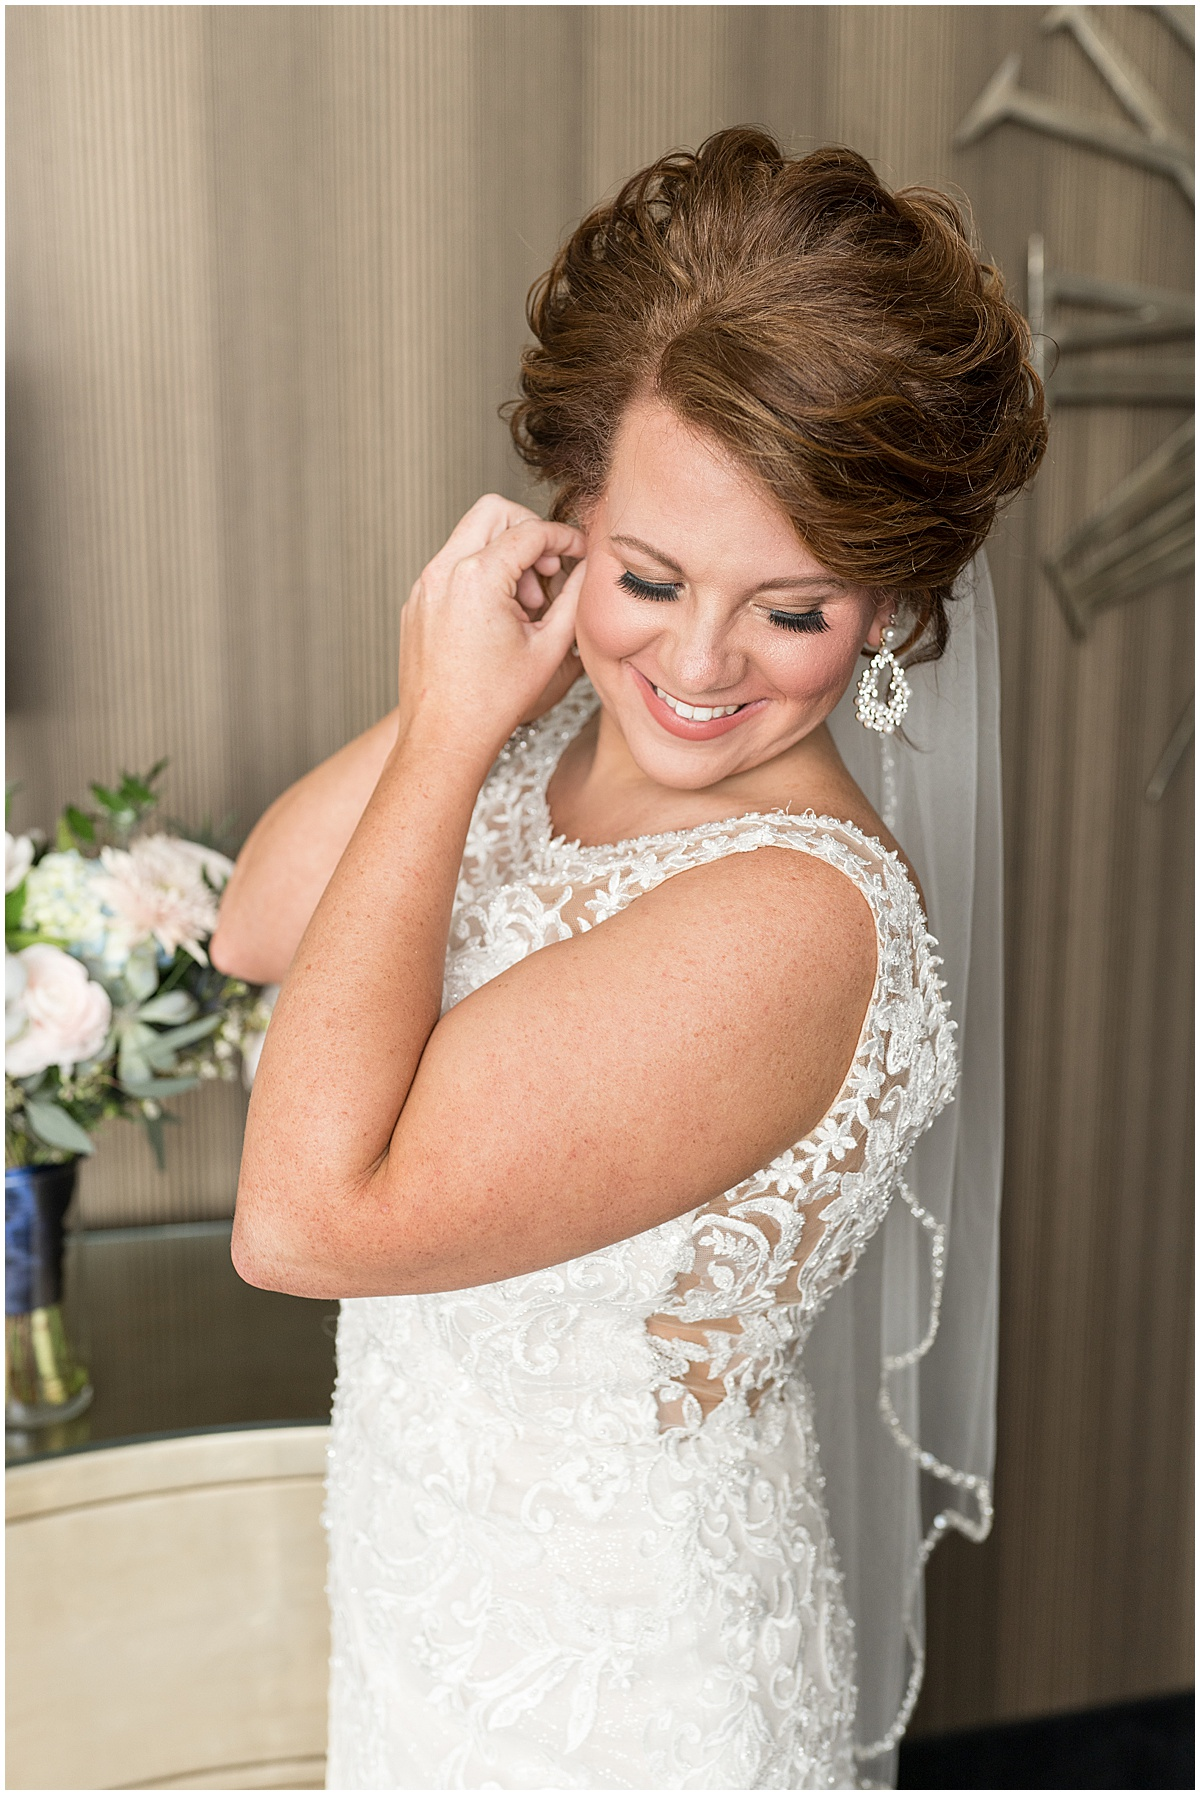 Bride getting ready photos at wedding at The Brandywine in Monticello, Indiana